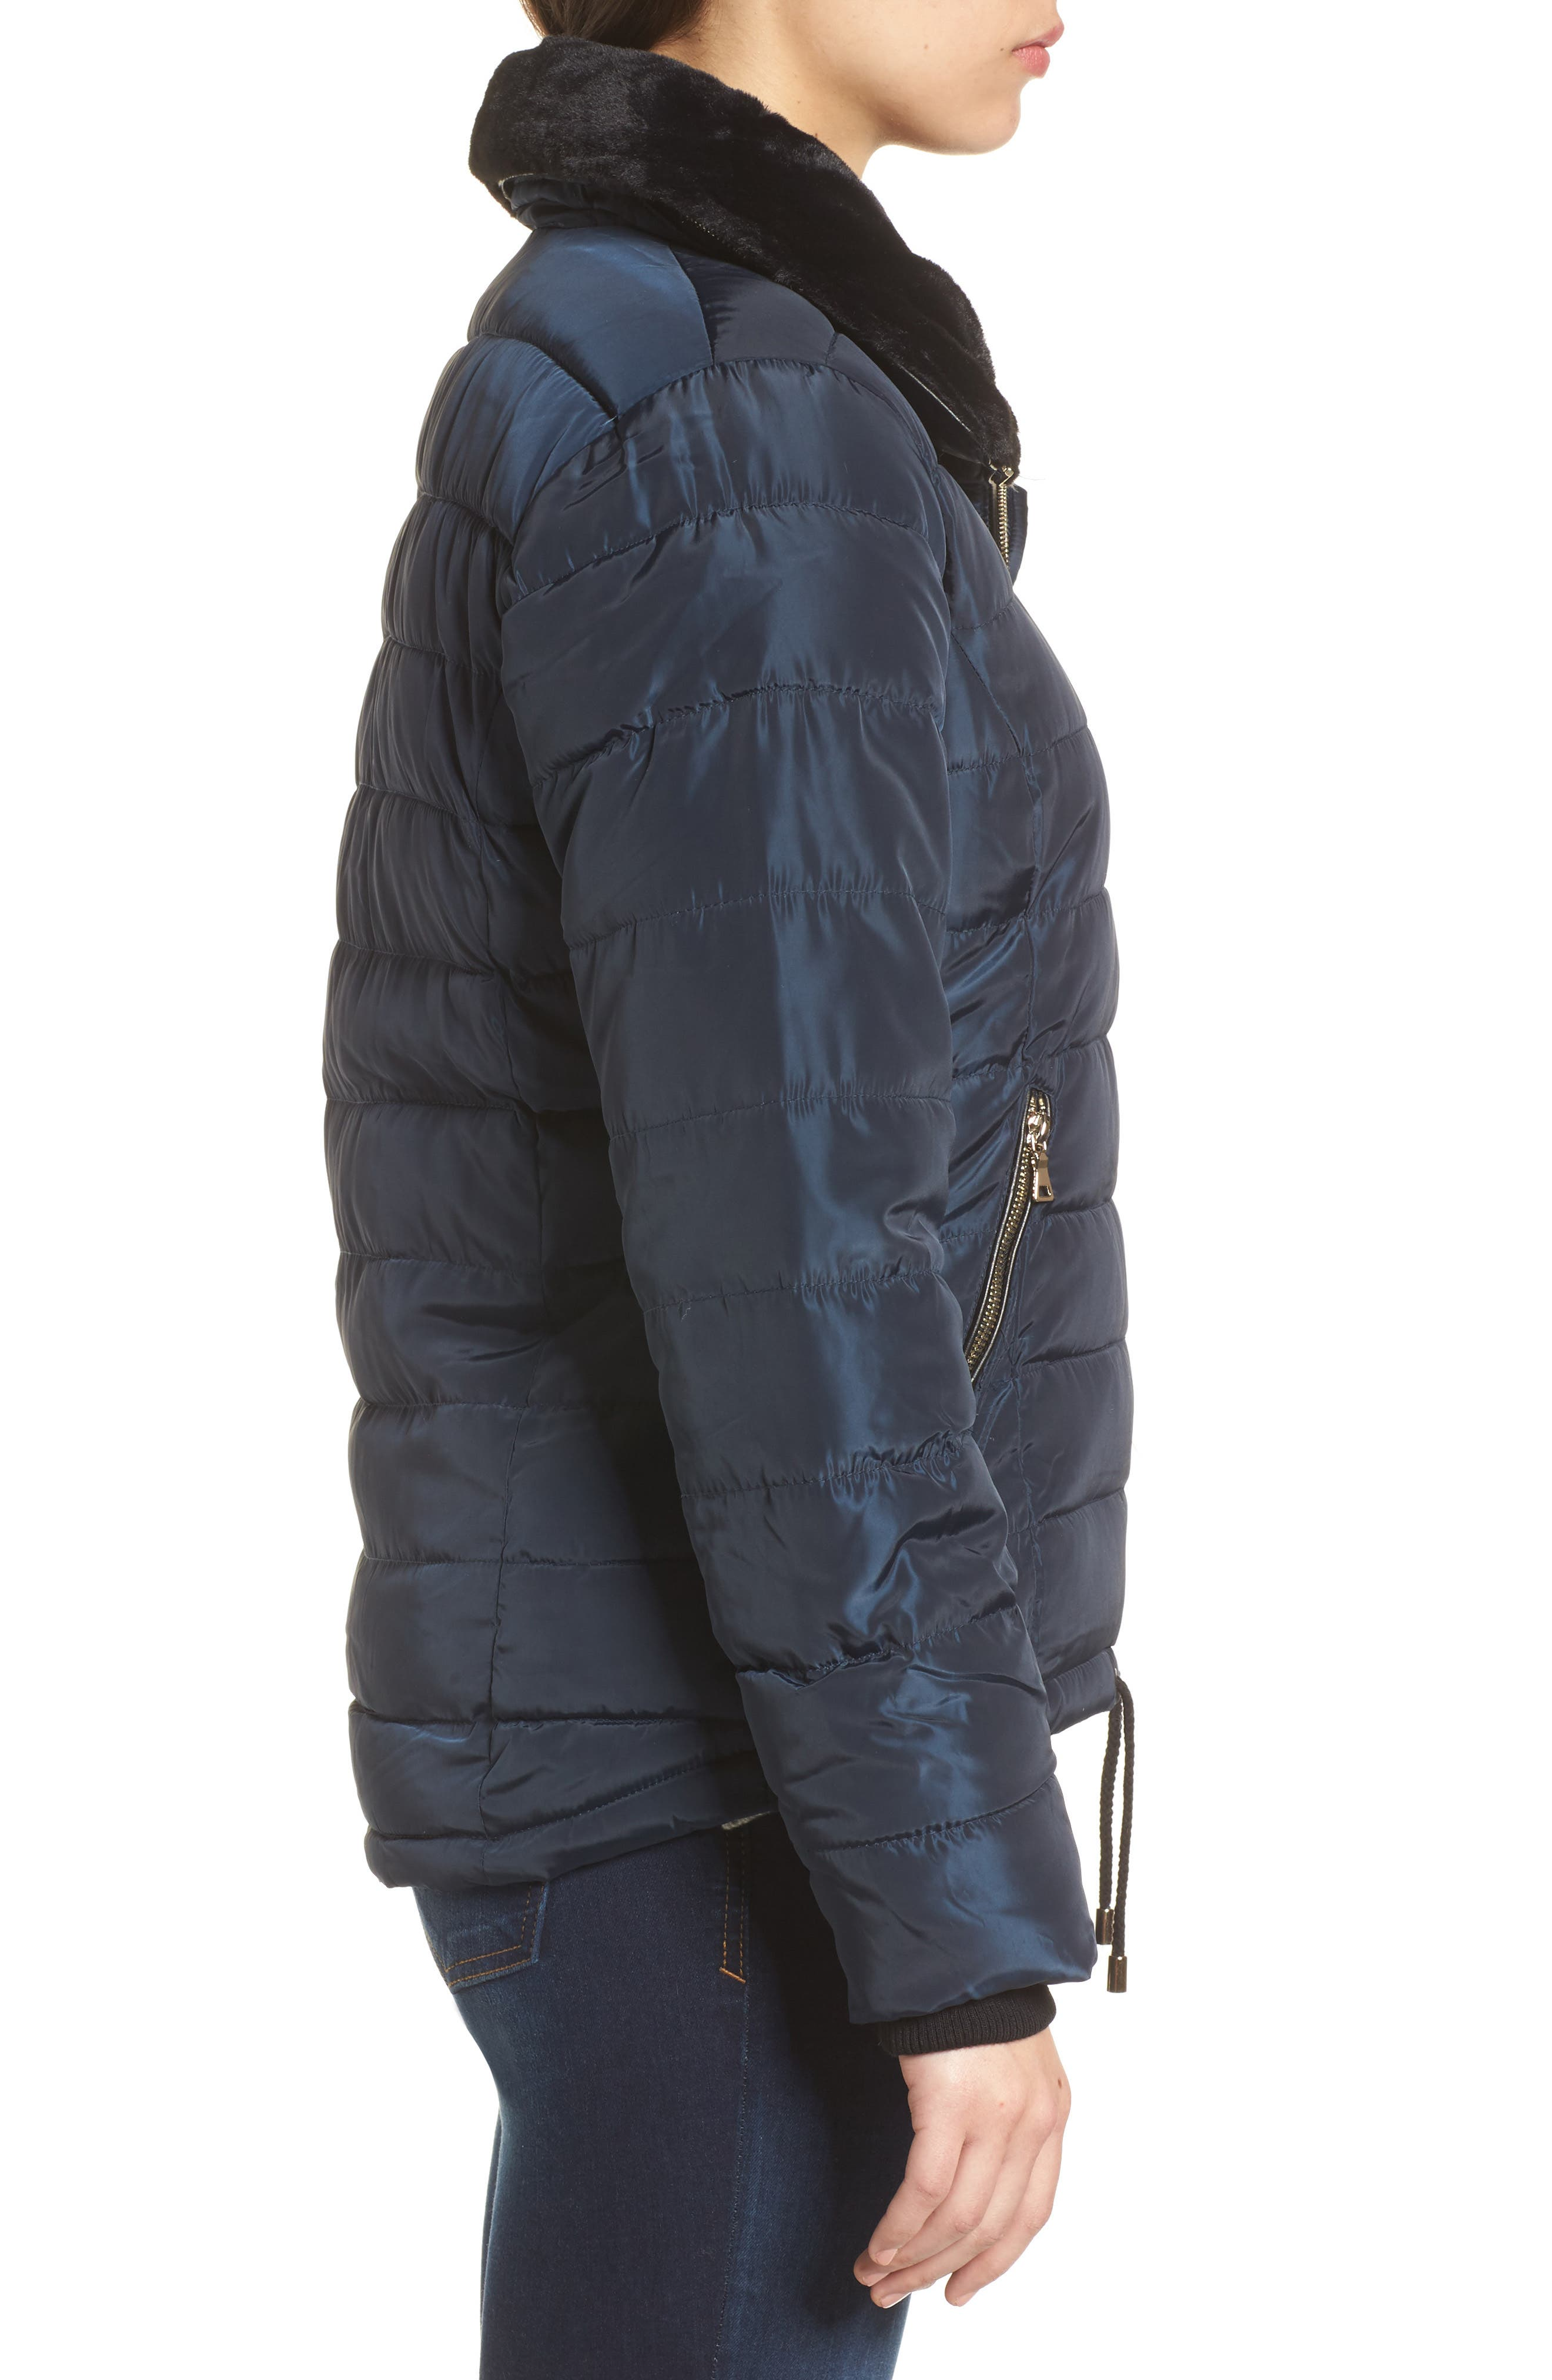 Puffer Jacket with Faux Fur Collar Lining,                             Alternate thumbnail 3, color,                             Navy Blue